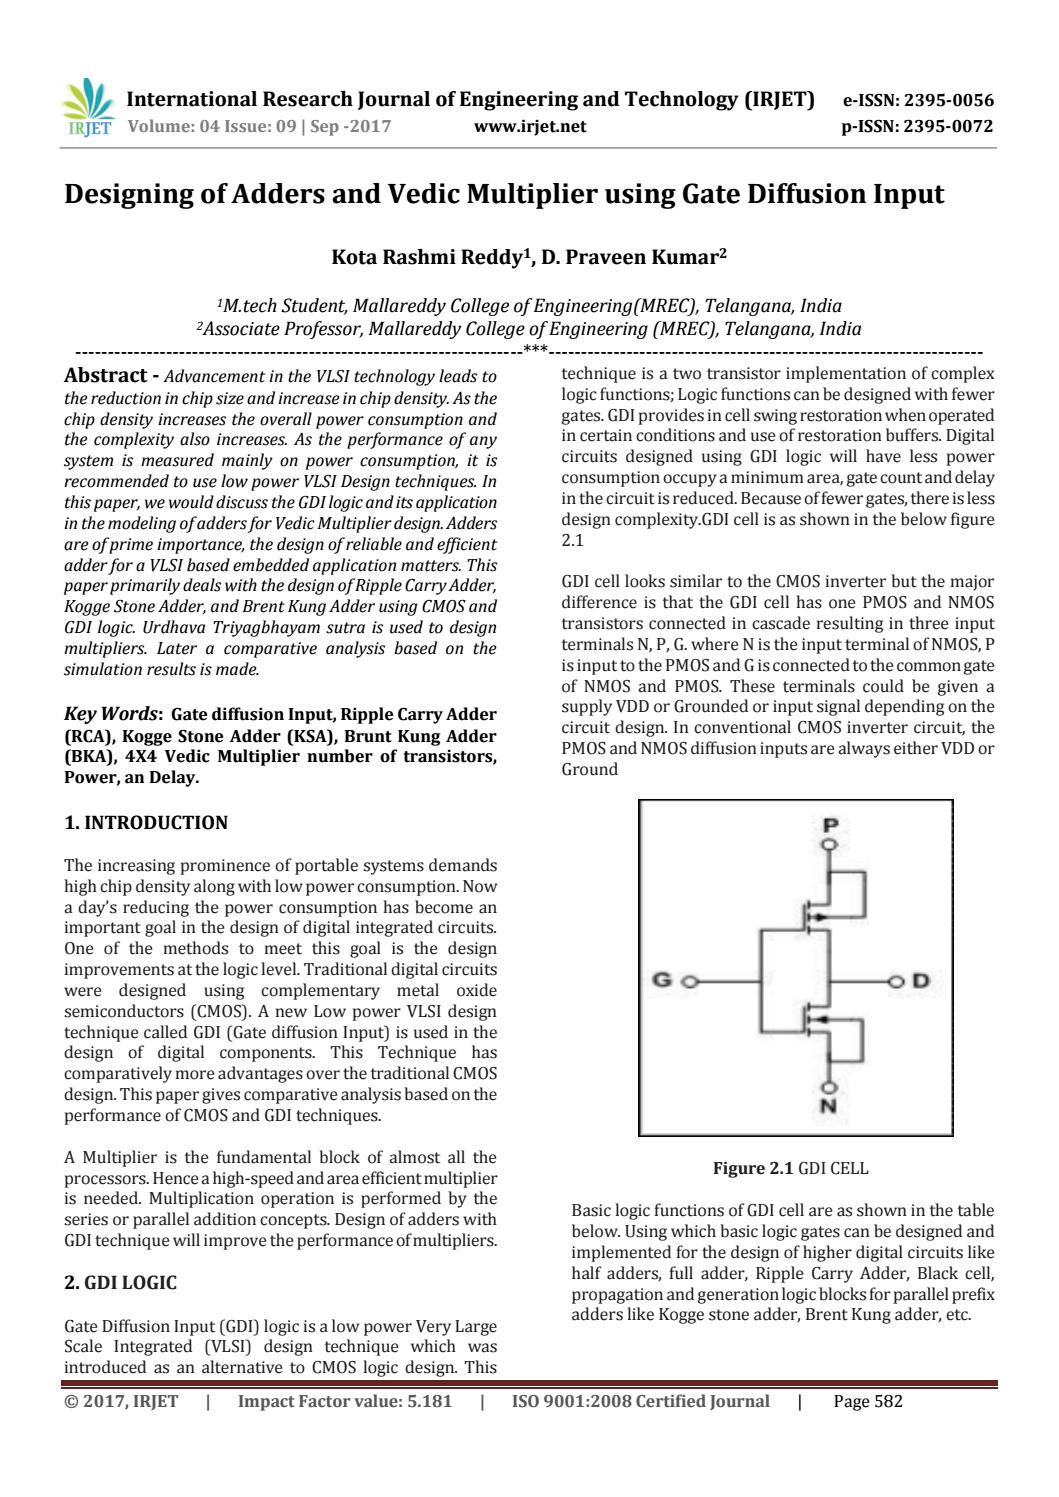 hight resolution of designing of adders and vedic multiplier using gate diffusion input by irjet journal issuu